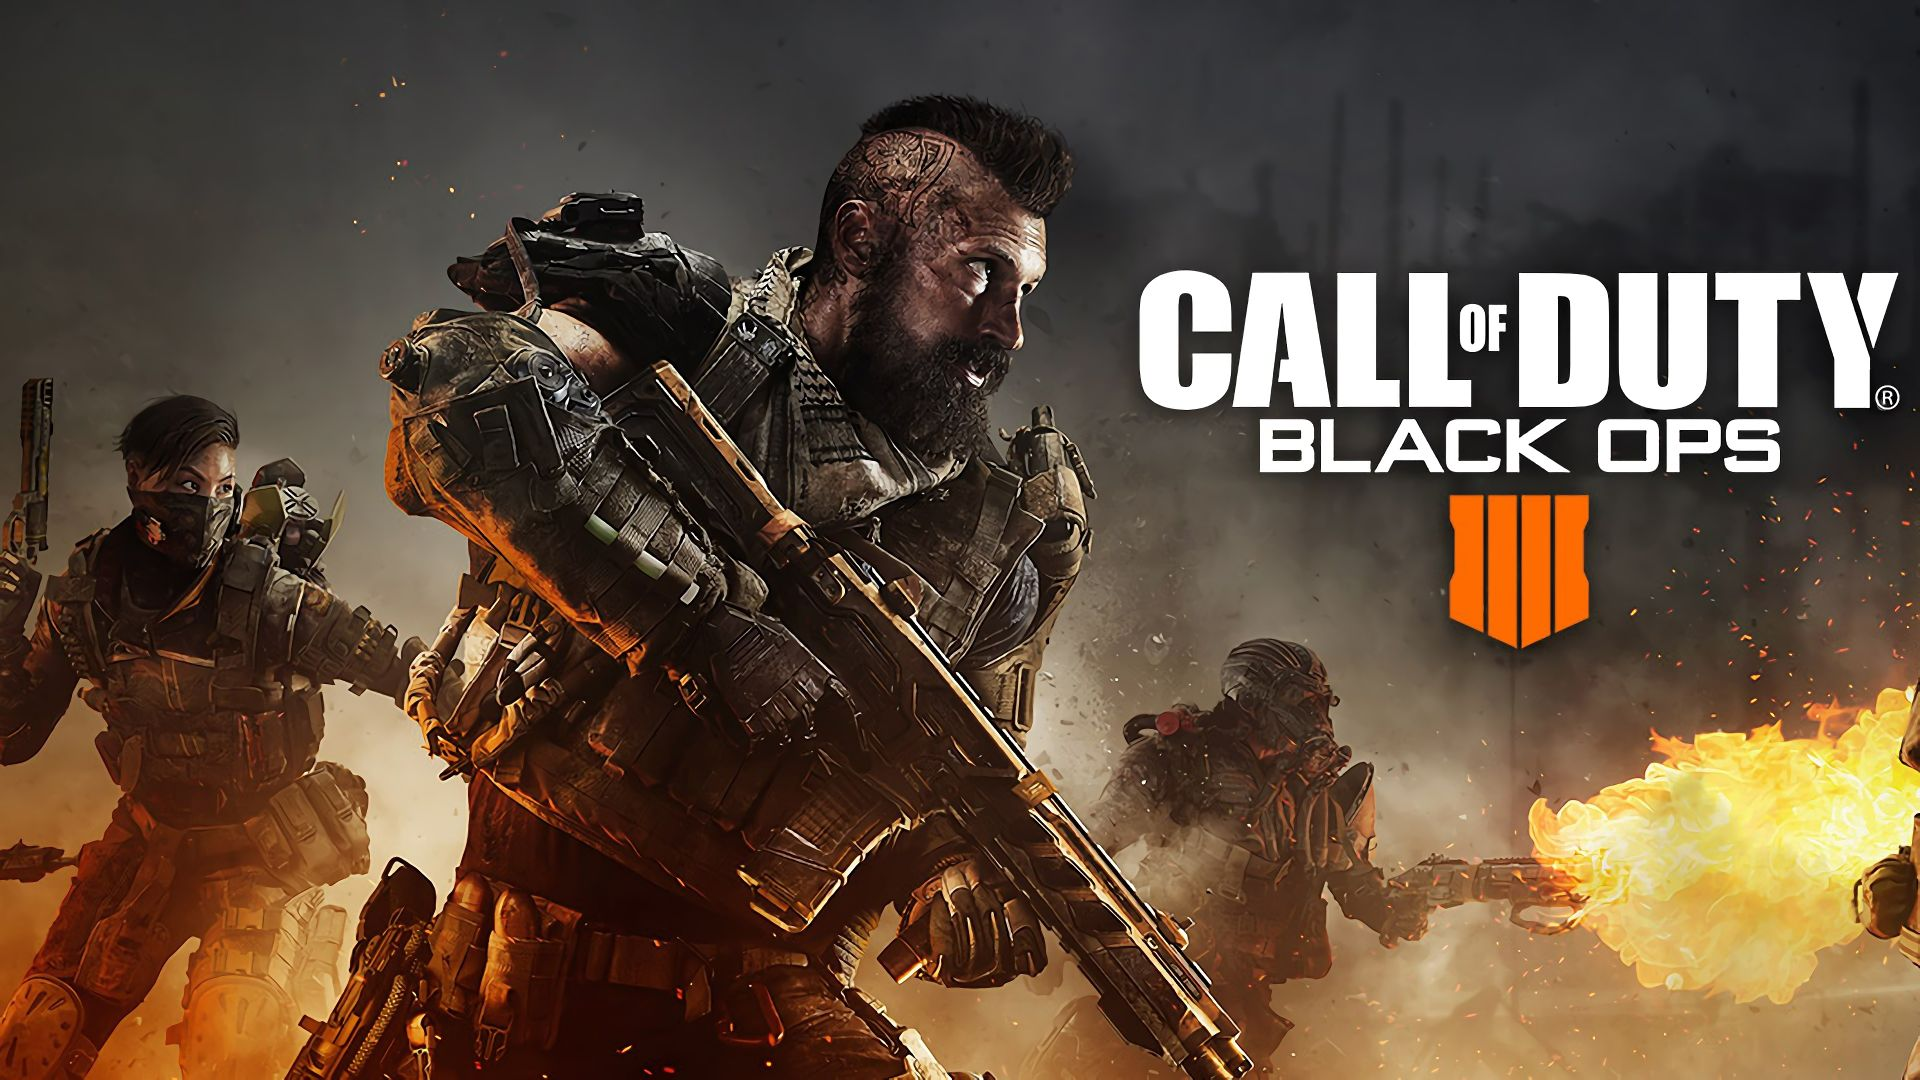 Call Of Duty Black Ops 4, Poster, 4k - Call Of Duty Black Ops 4 4k - HD Wallpaper